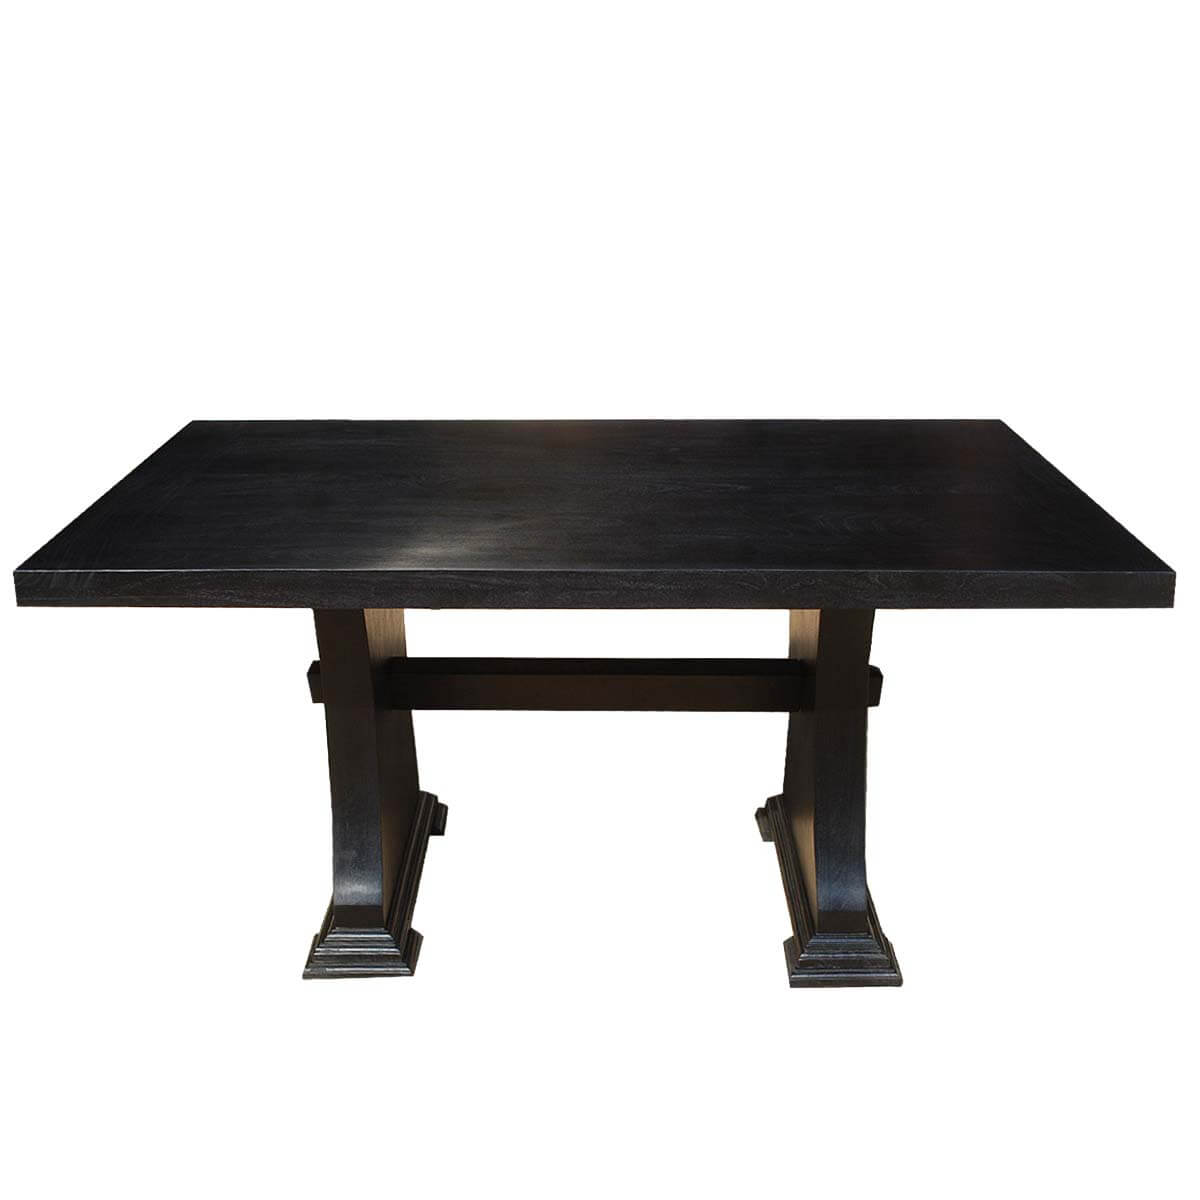 by room dining room dining tables pelham solid wood rectangle trestle